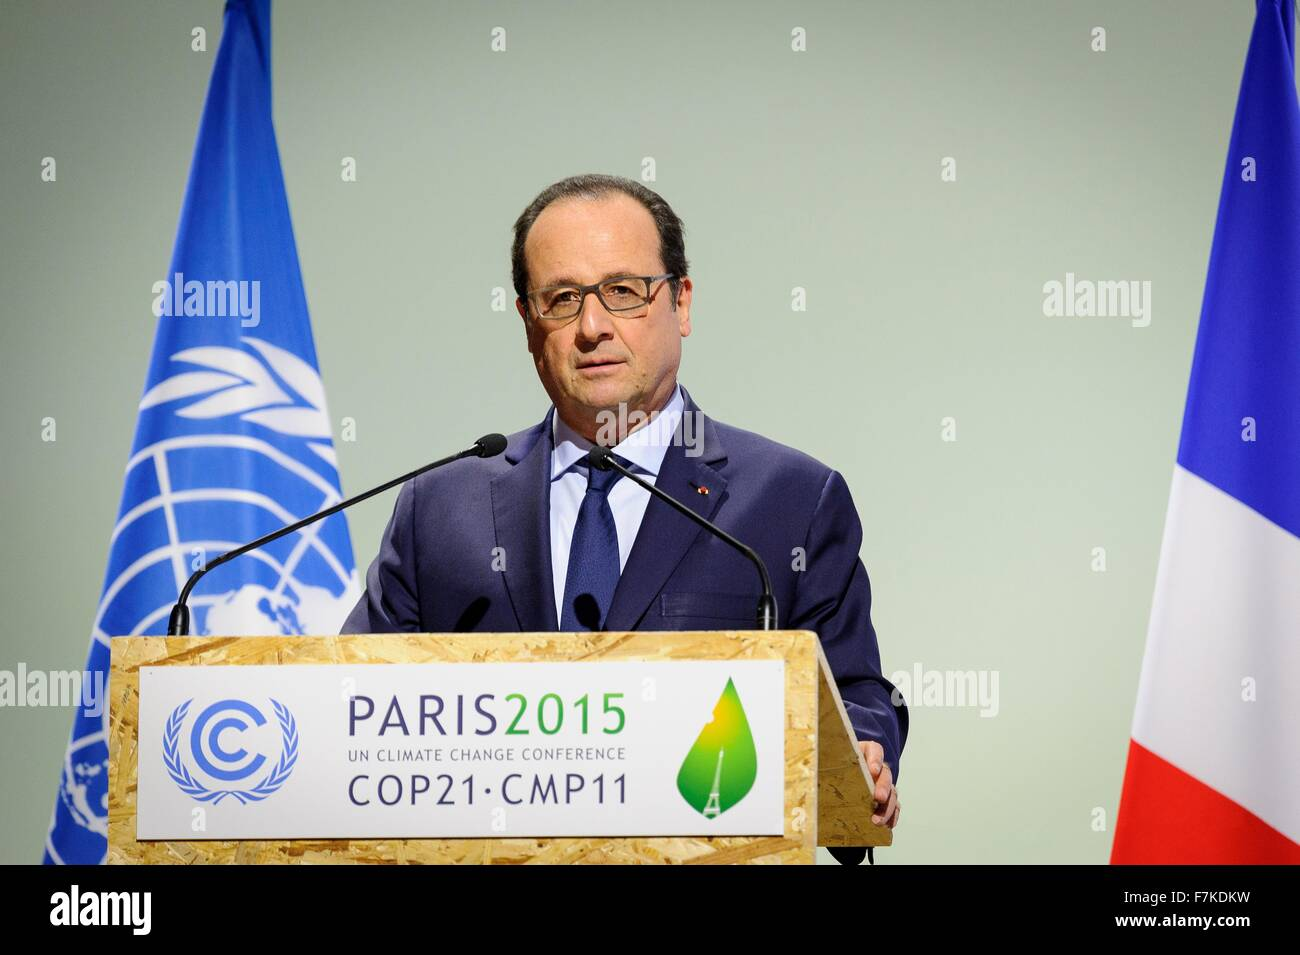 Le Bourget, France. 30th November, 2015. French President Francois Hollande address the opening plenary session - Stock Image